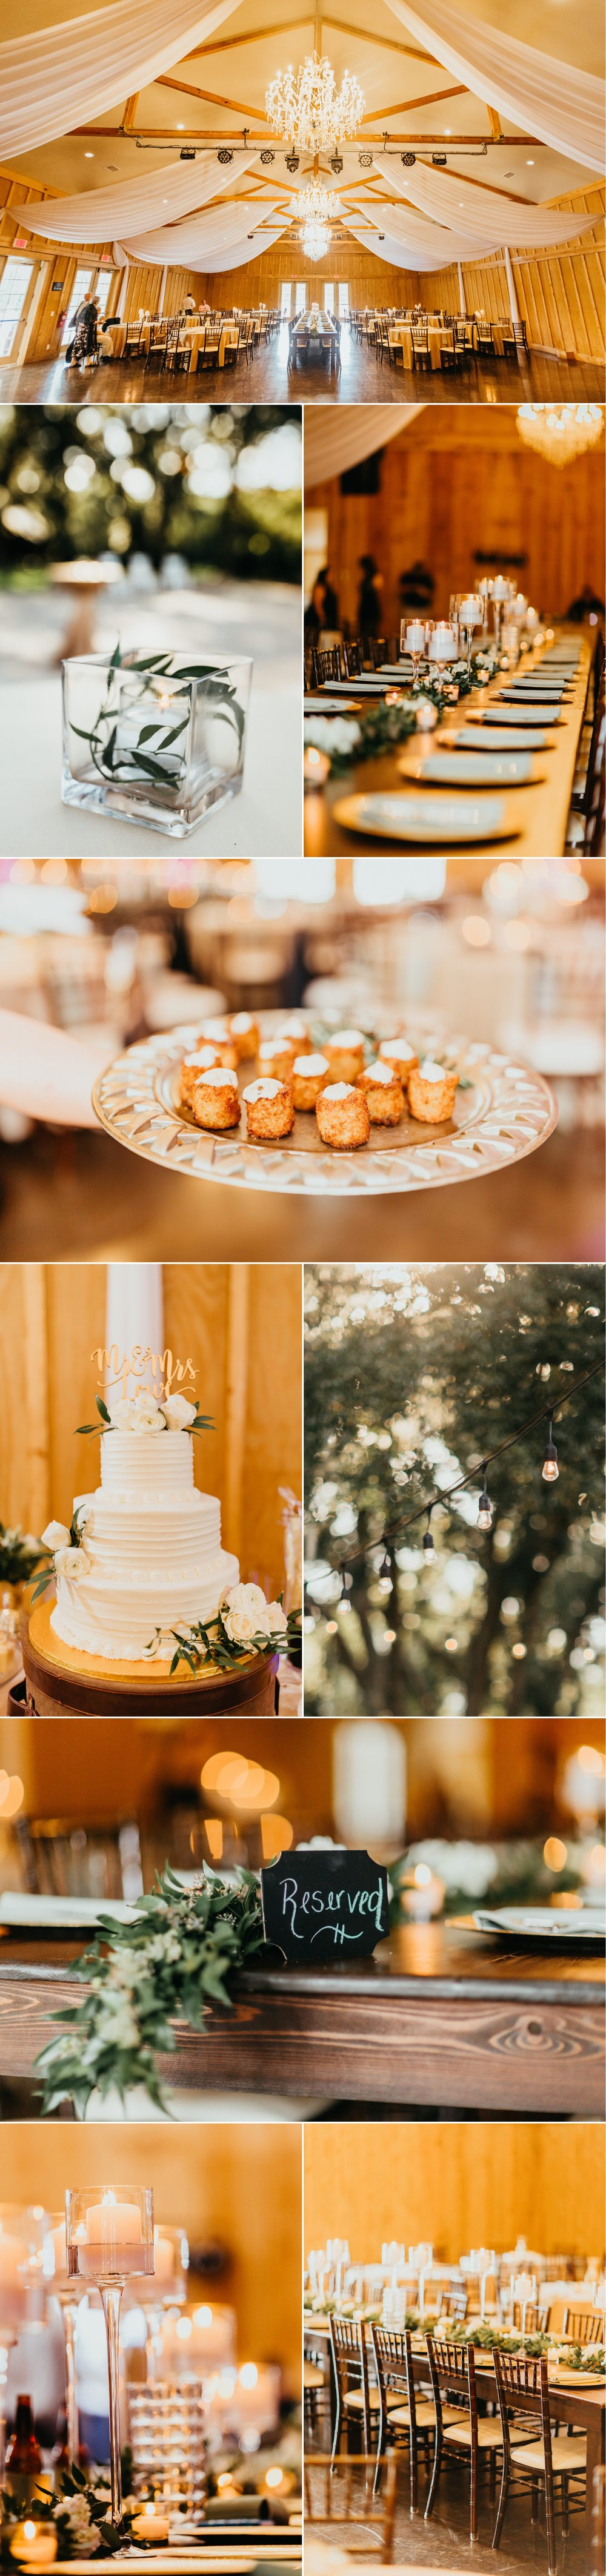 Bowing Oaks chic greenery farmhouse wedding reception decor